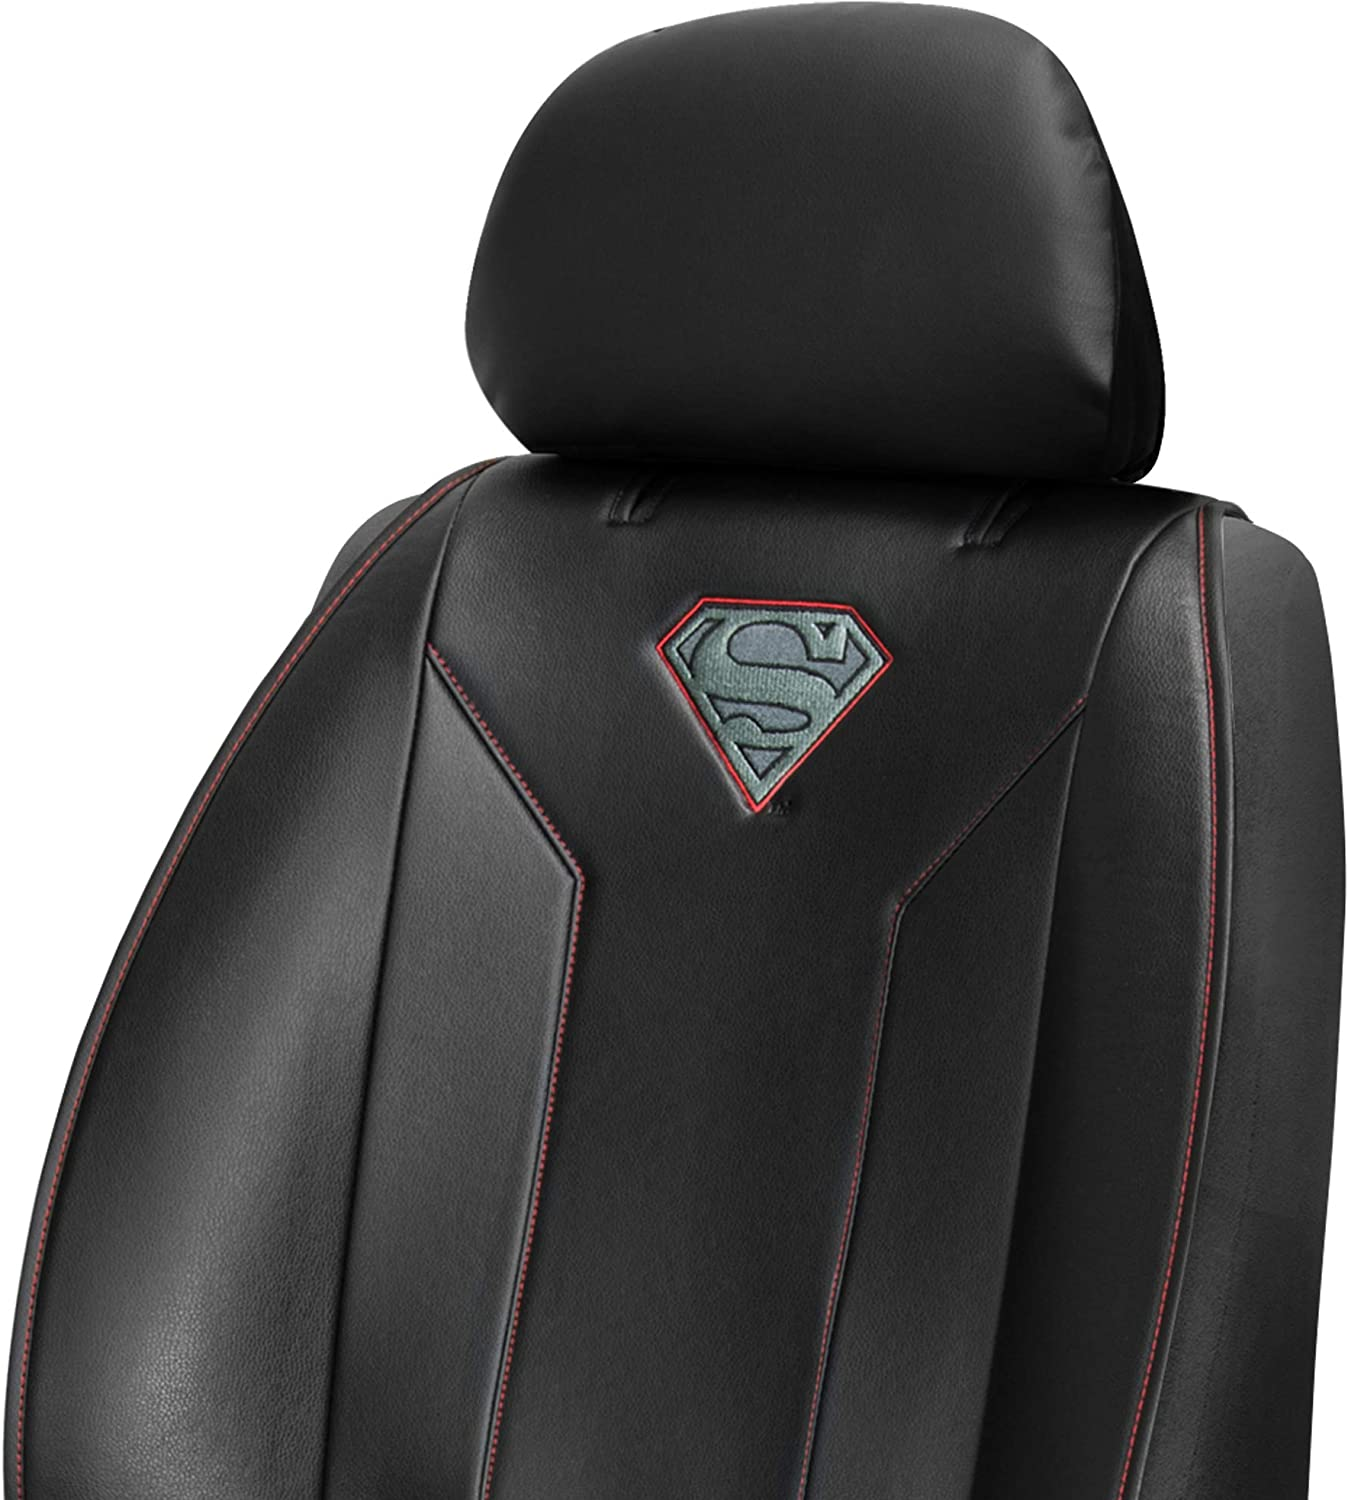 Plasticolor 008623R01 Captain America Shield Symbol Icon Marvel Premium Stitched Sideless Seat Cover with Cargo Pocket